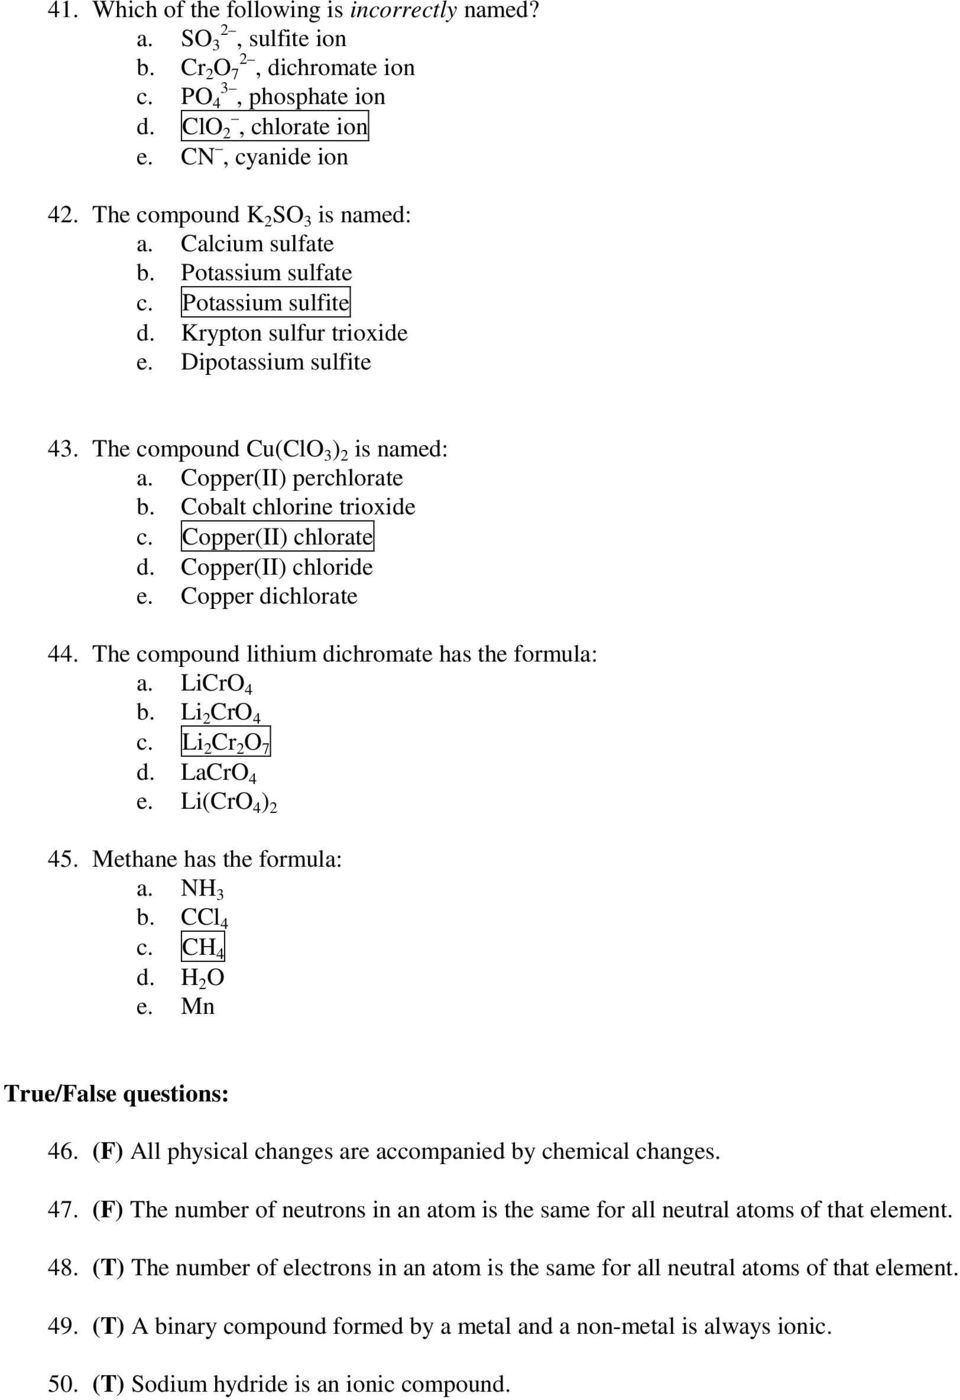 Chemistry Quiz 1 Answer Key September 16 Pdf